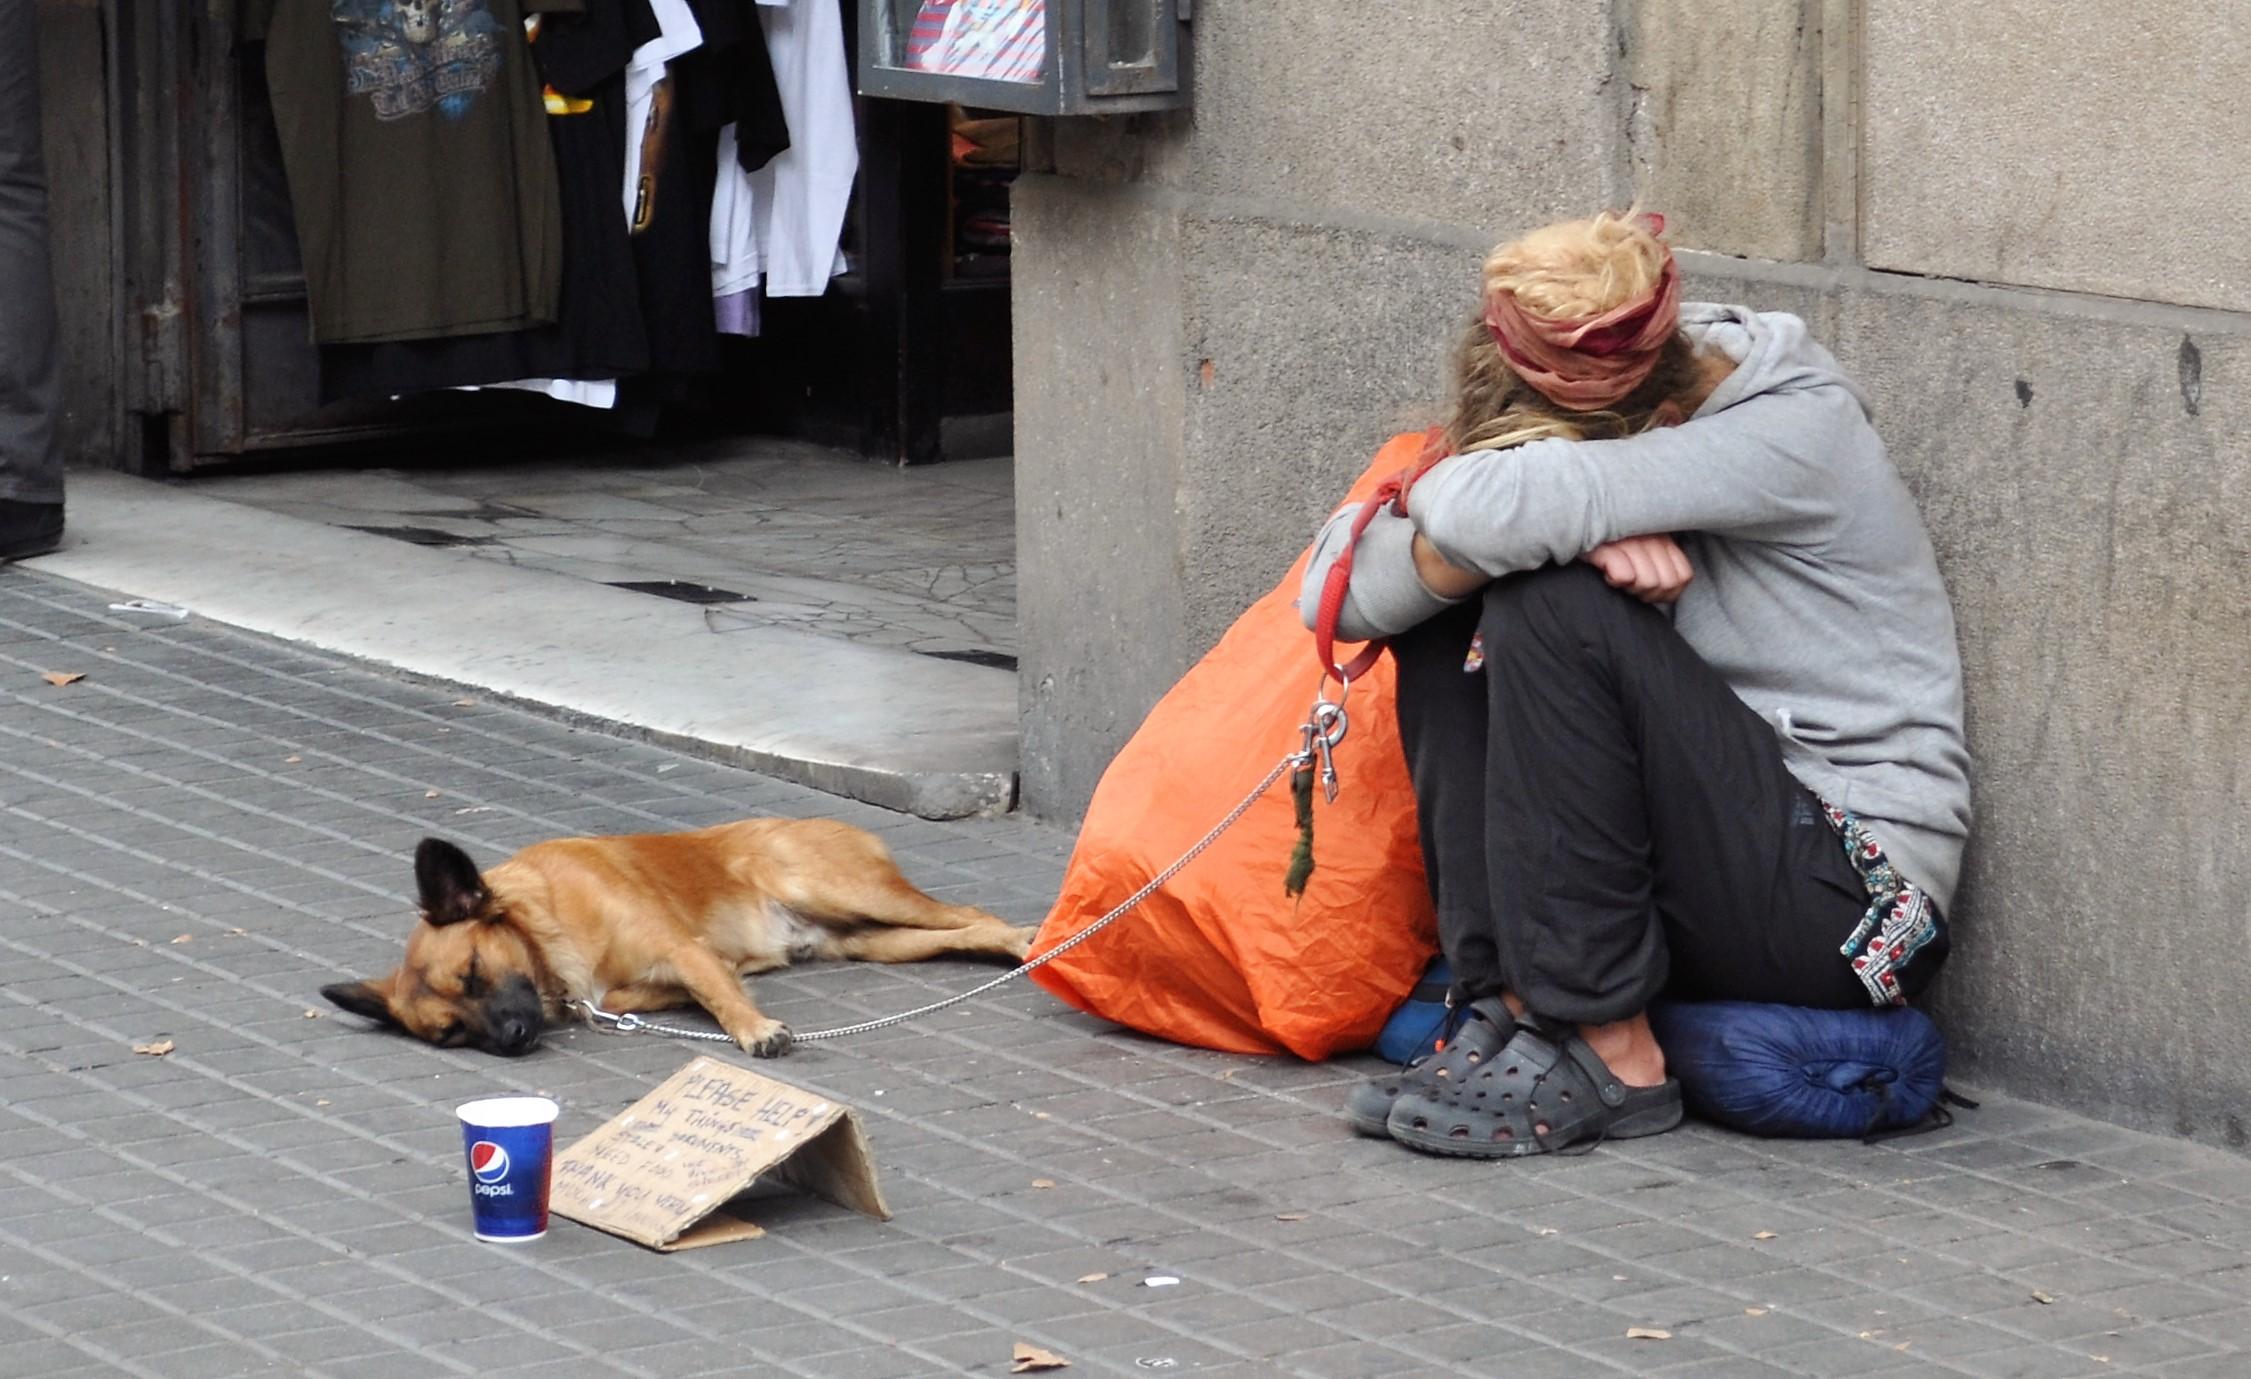 DRUGS IMPLICATED IN MANY HOMELESS DEATHS